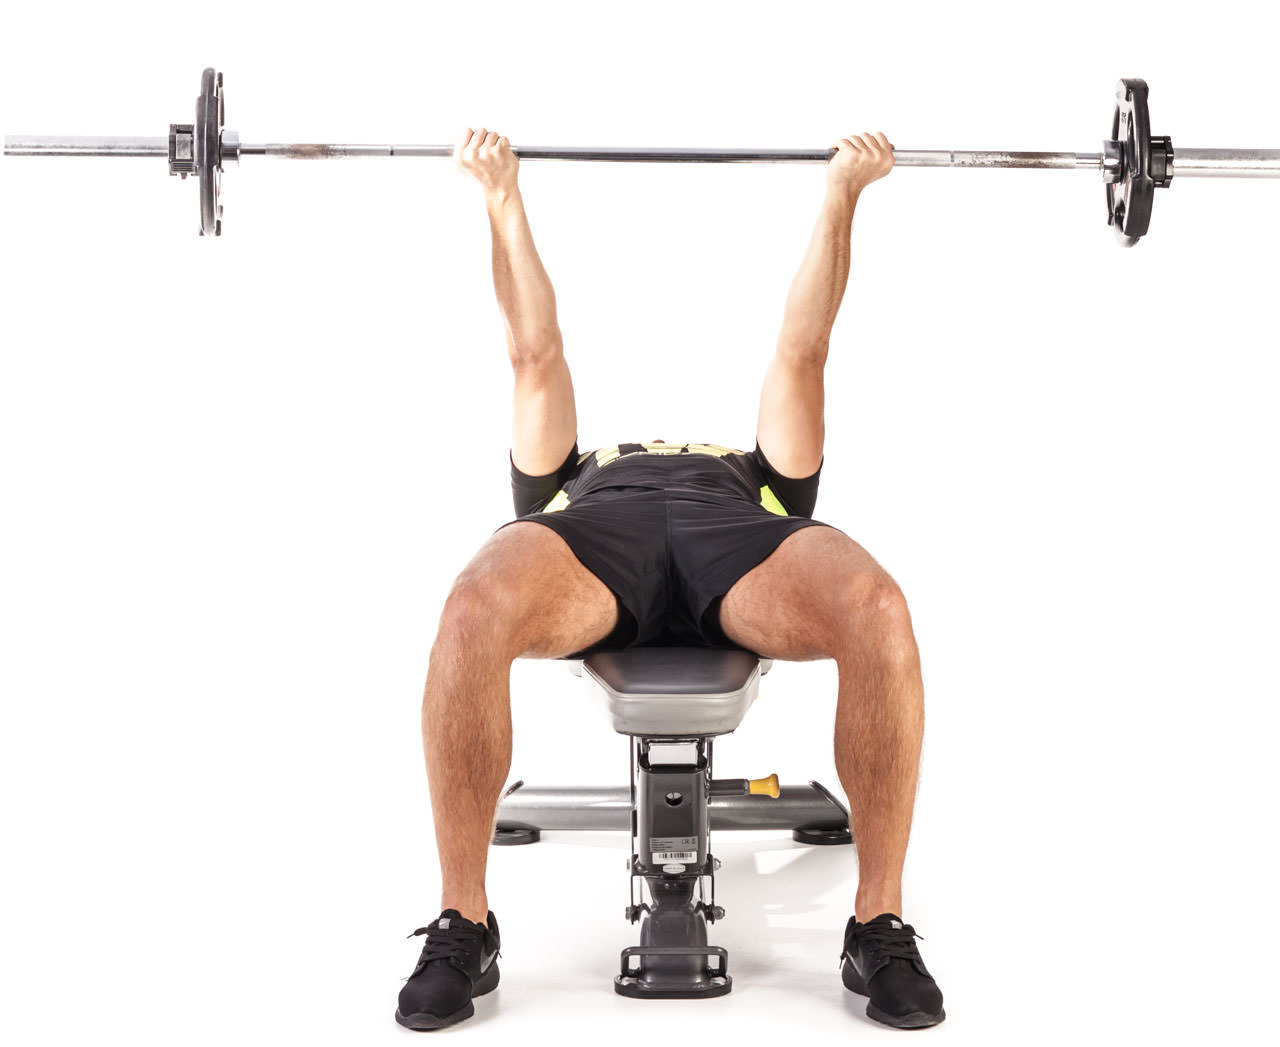 Reverse Triceps Bench Press frame #3